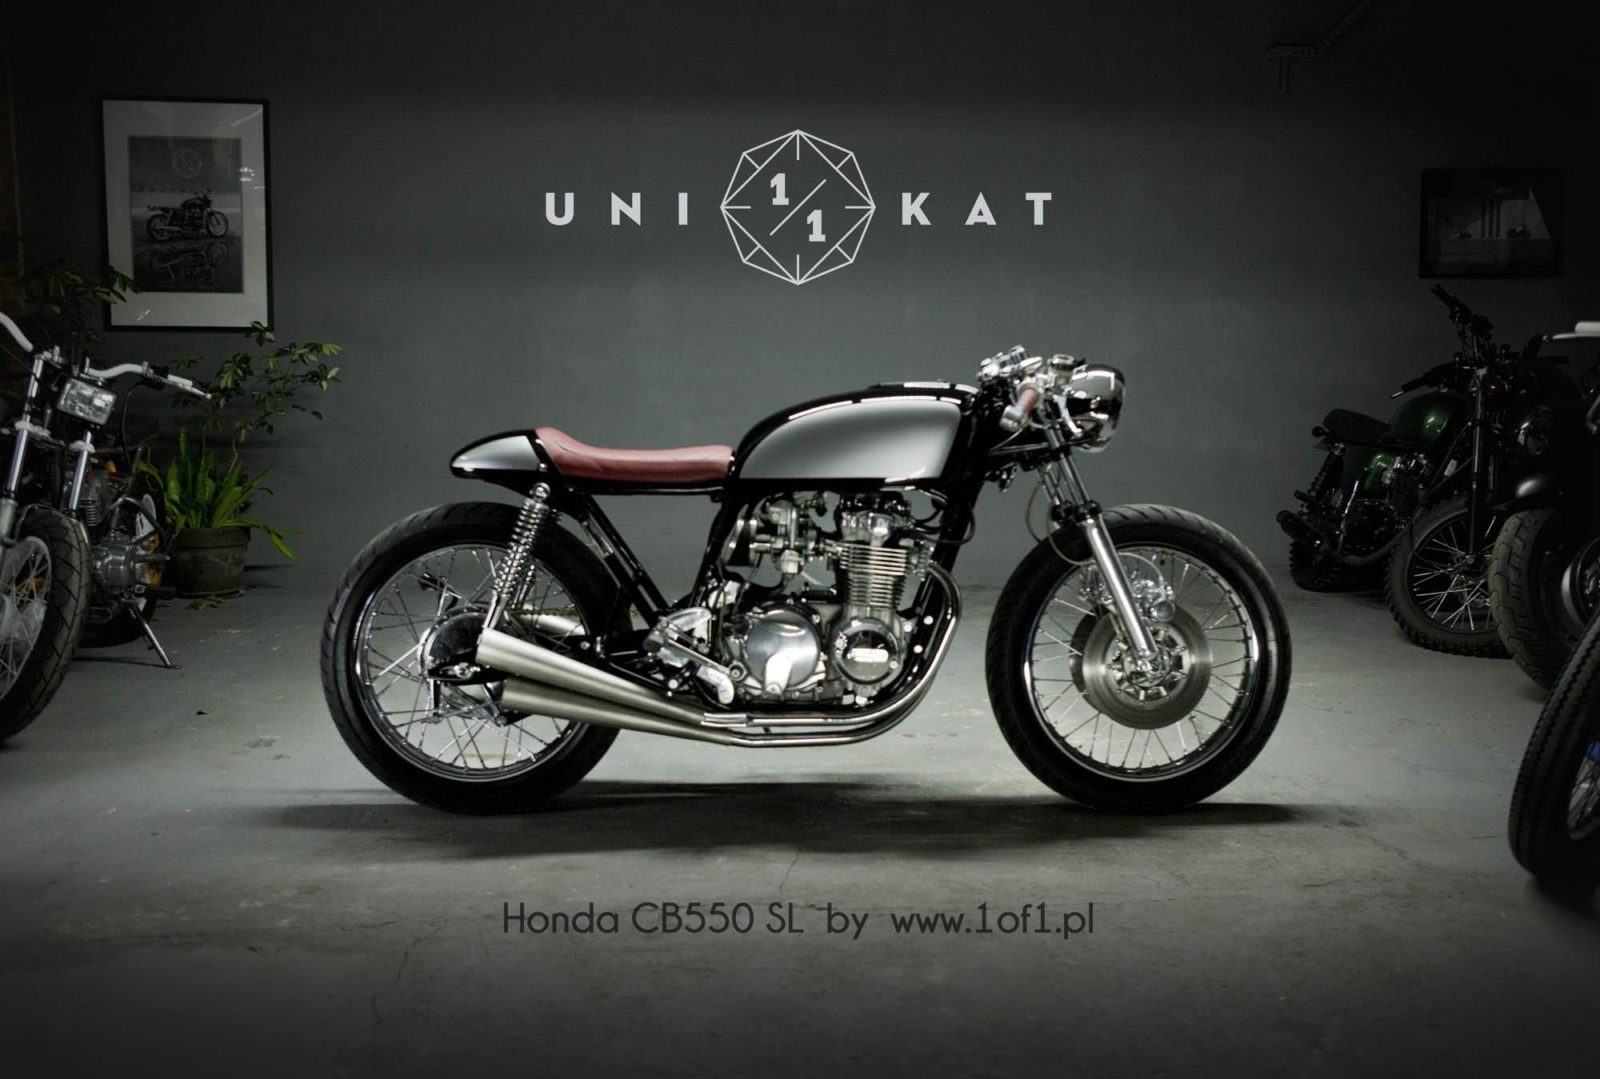 Honda CB550 SL Custom by Unikat